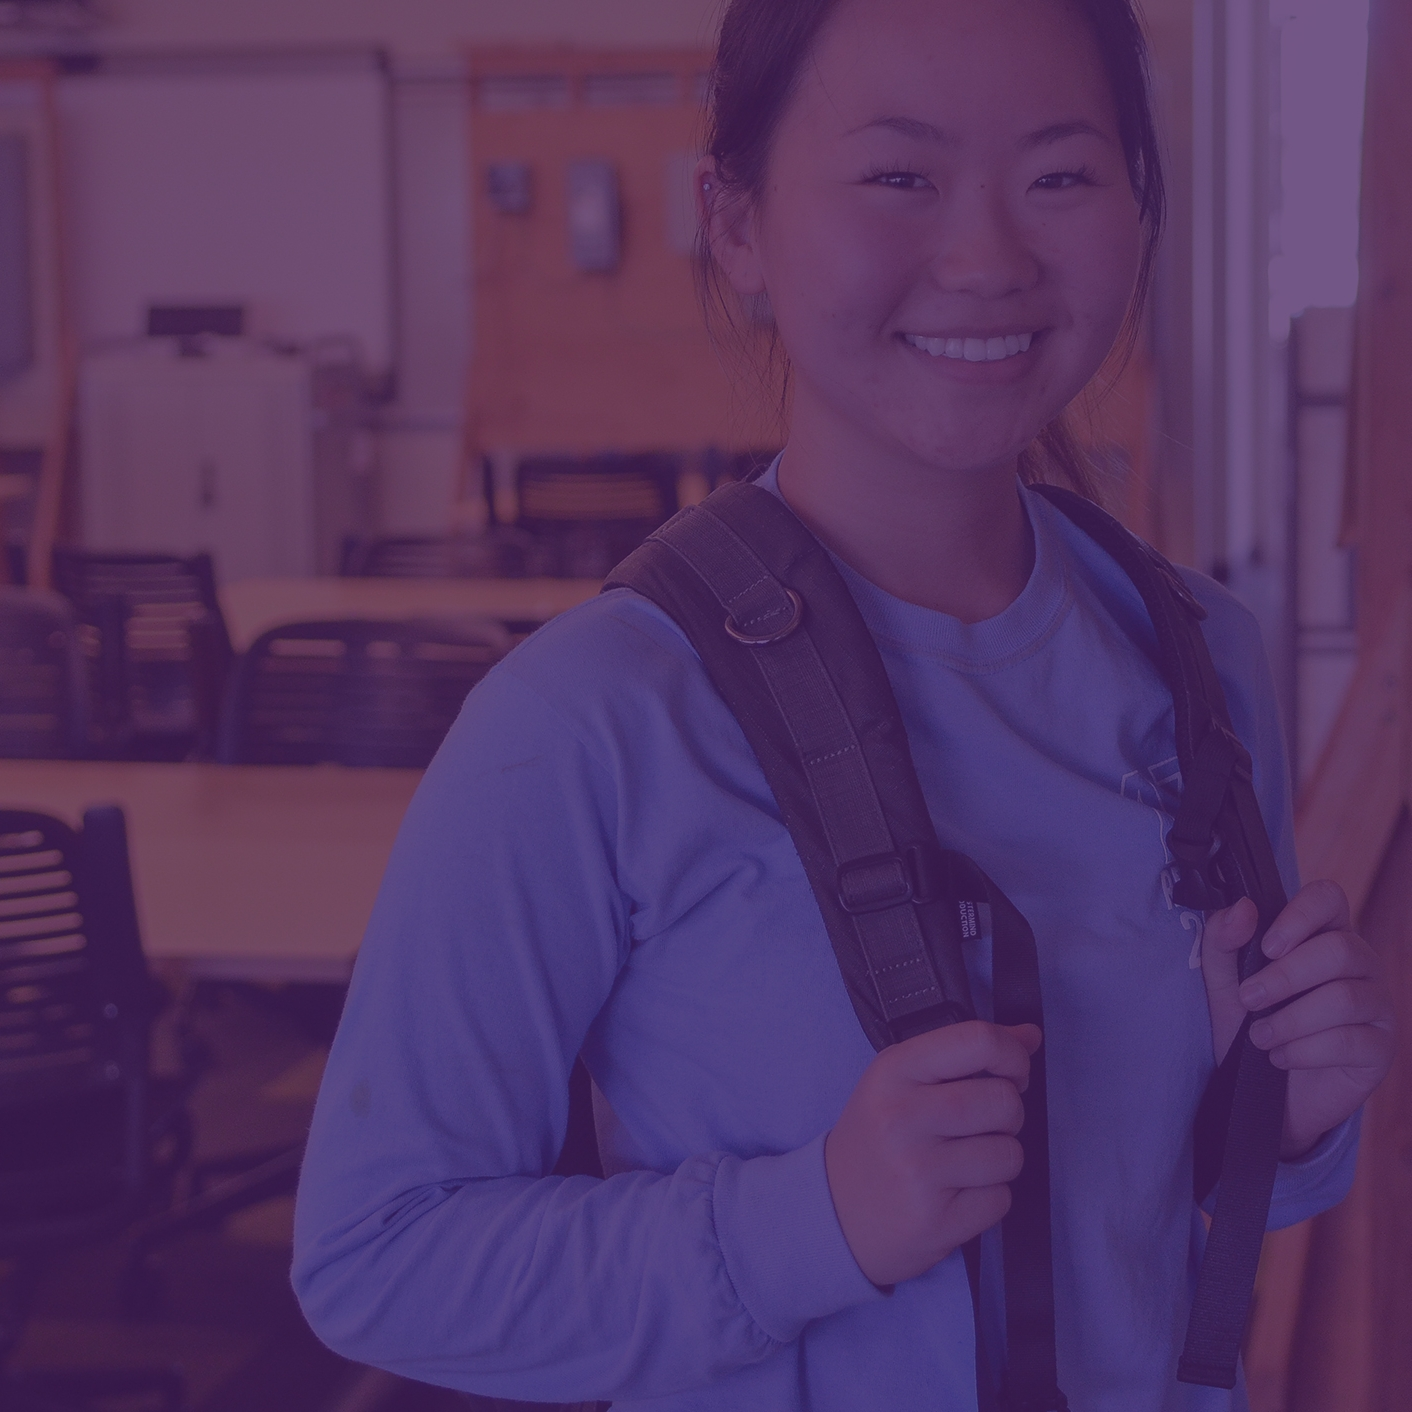 Female-Asian-Student-with-Backpack_purple.jpg